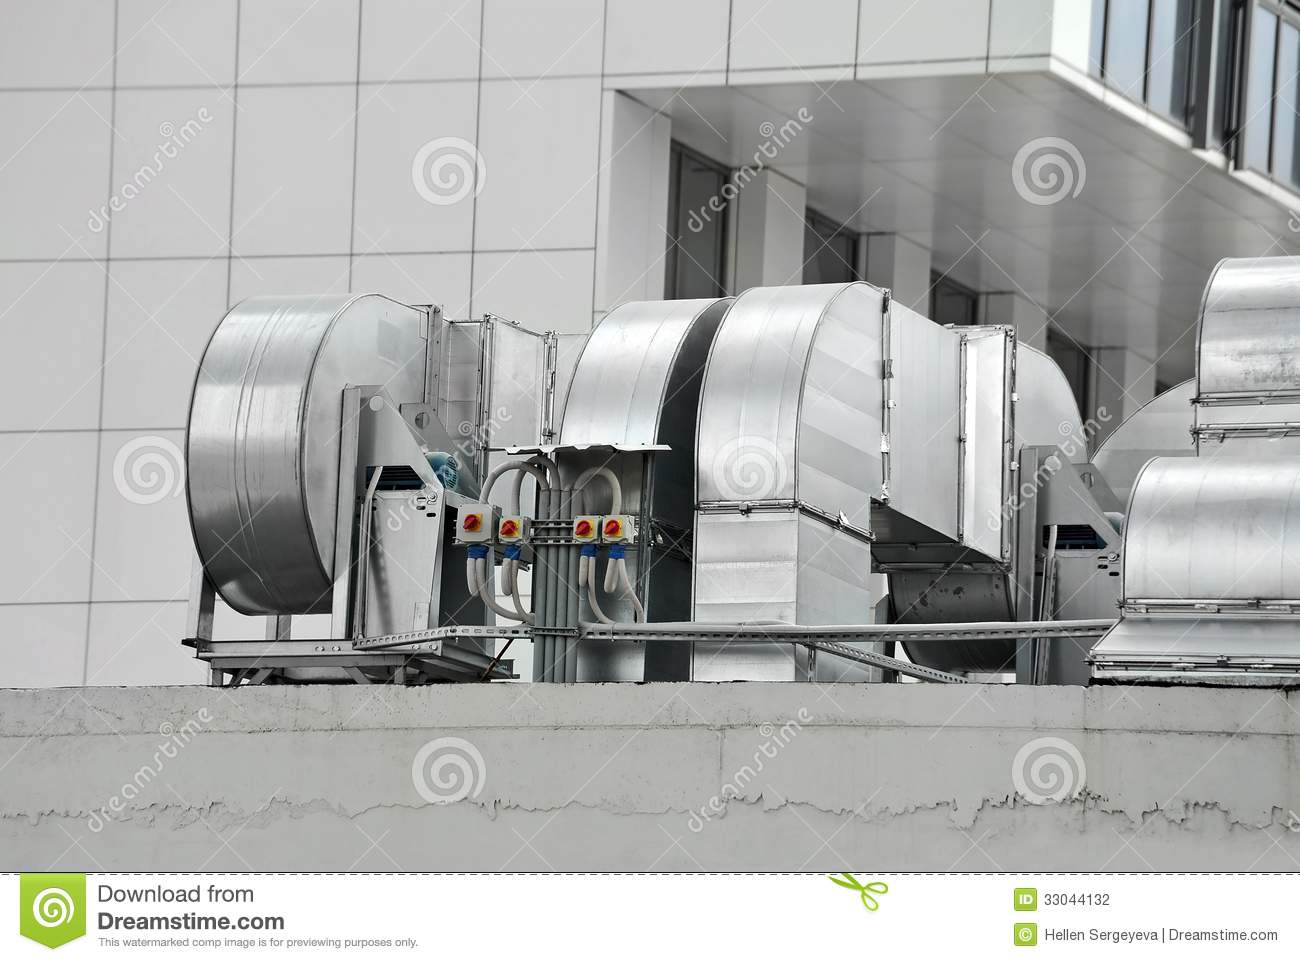 Industrial Air Ventilator : Industrial ventilation system stock photo image of cold